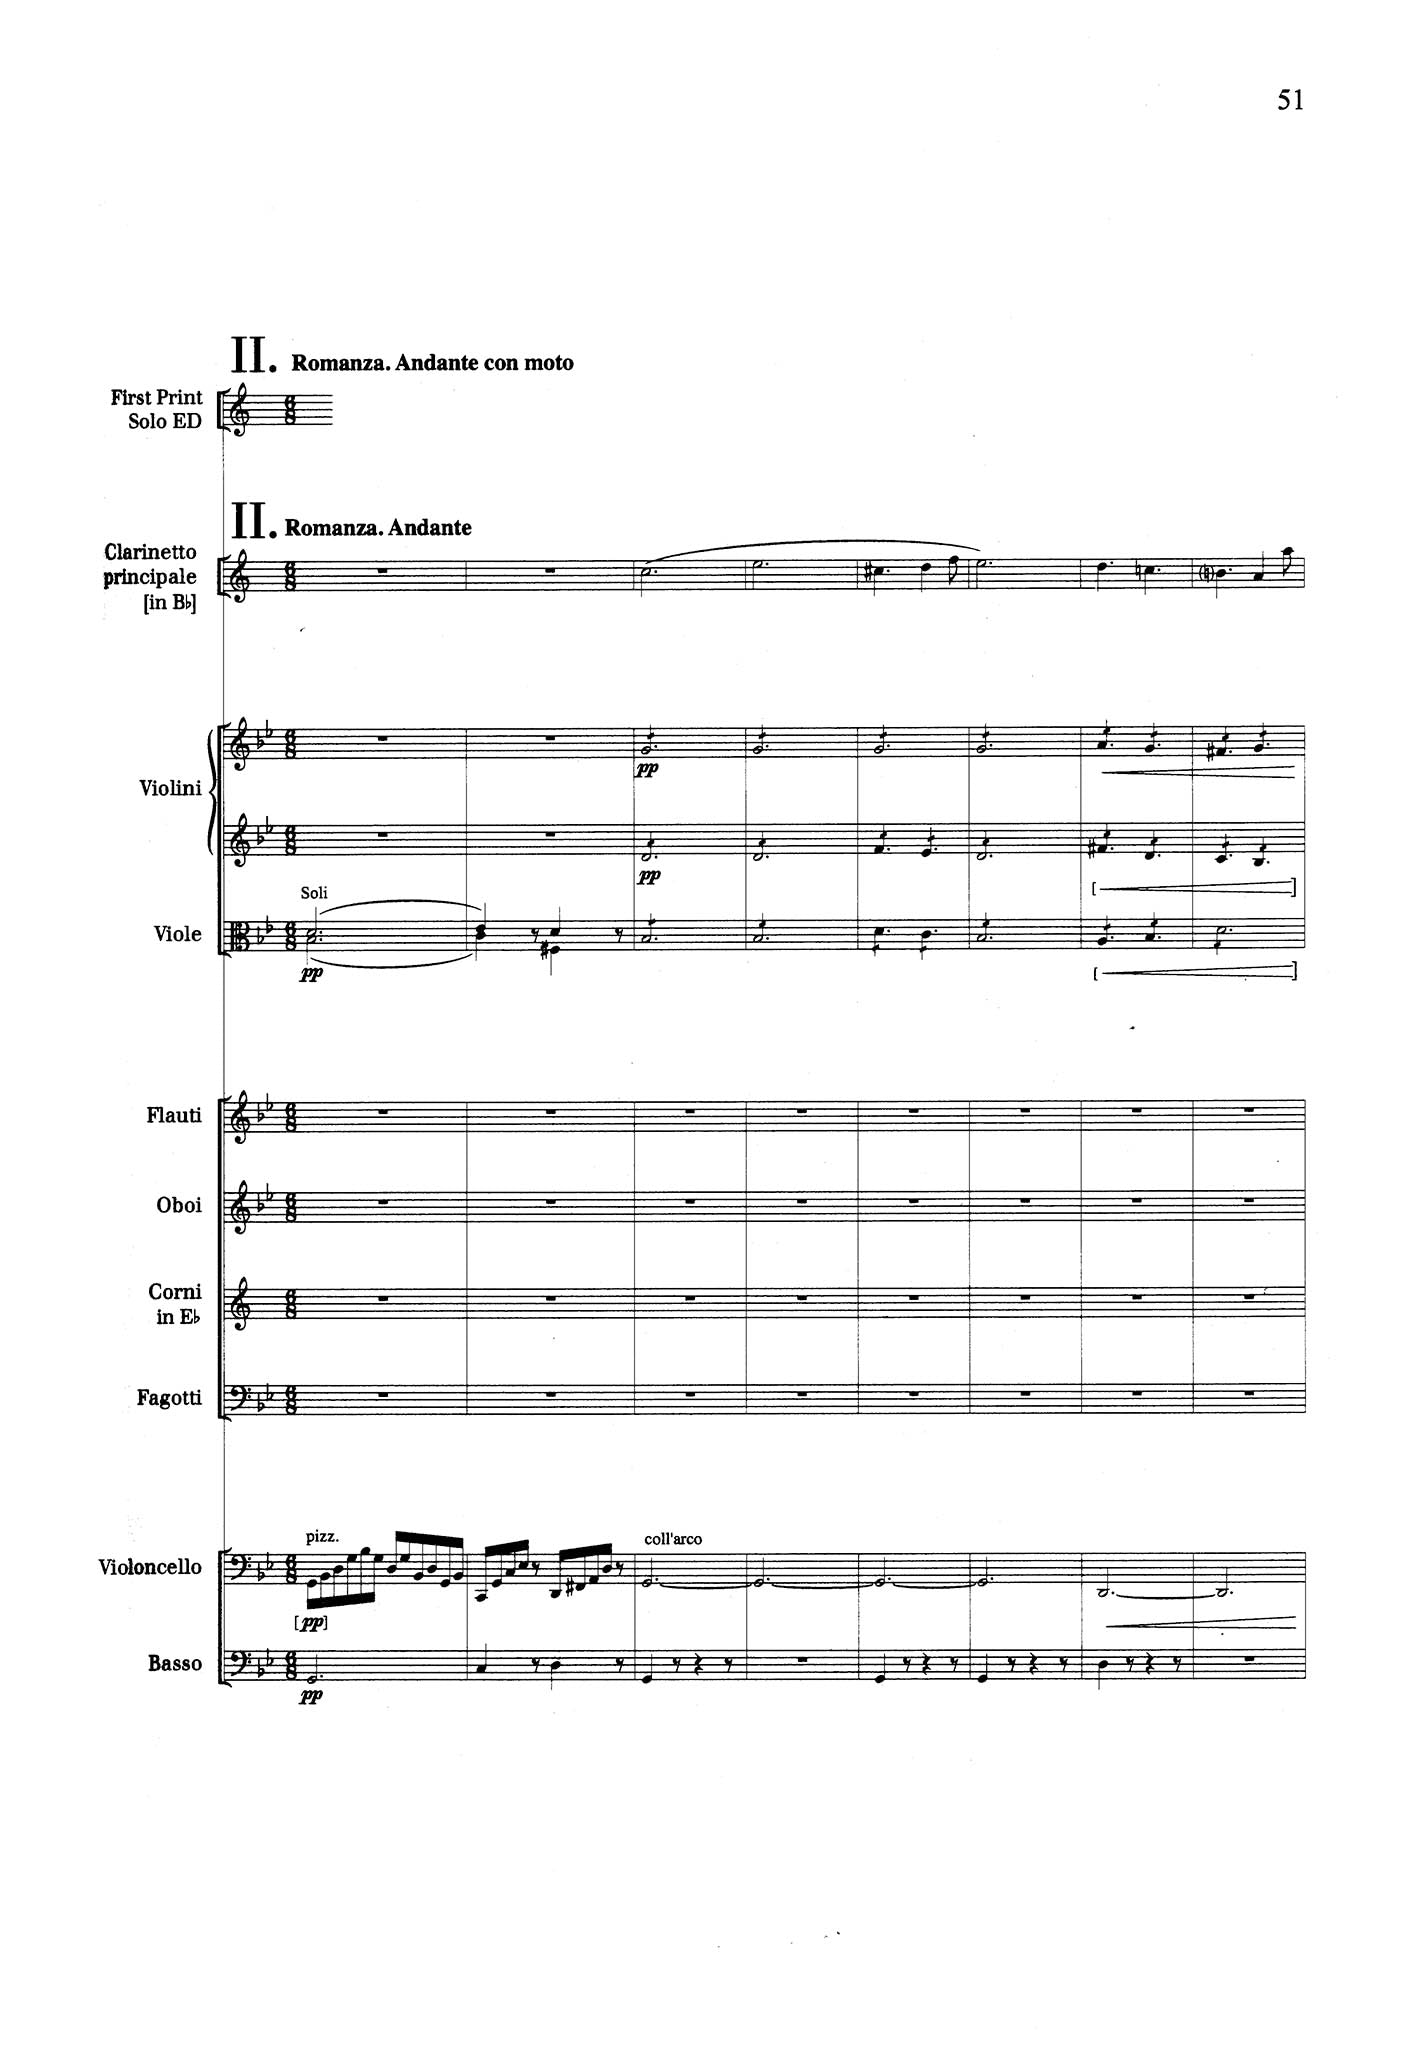 Clarinet Concerto No. 2 in E-flat Major, Op. 74 - Movement 2